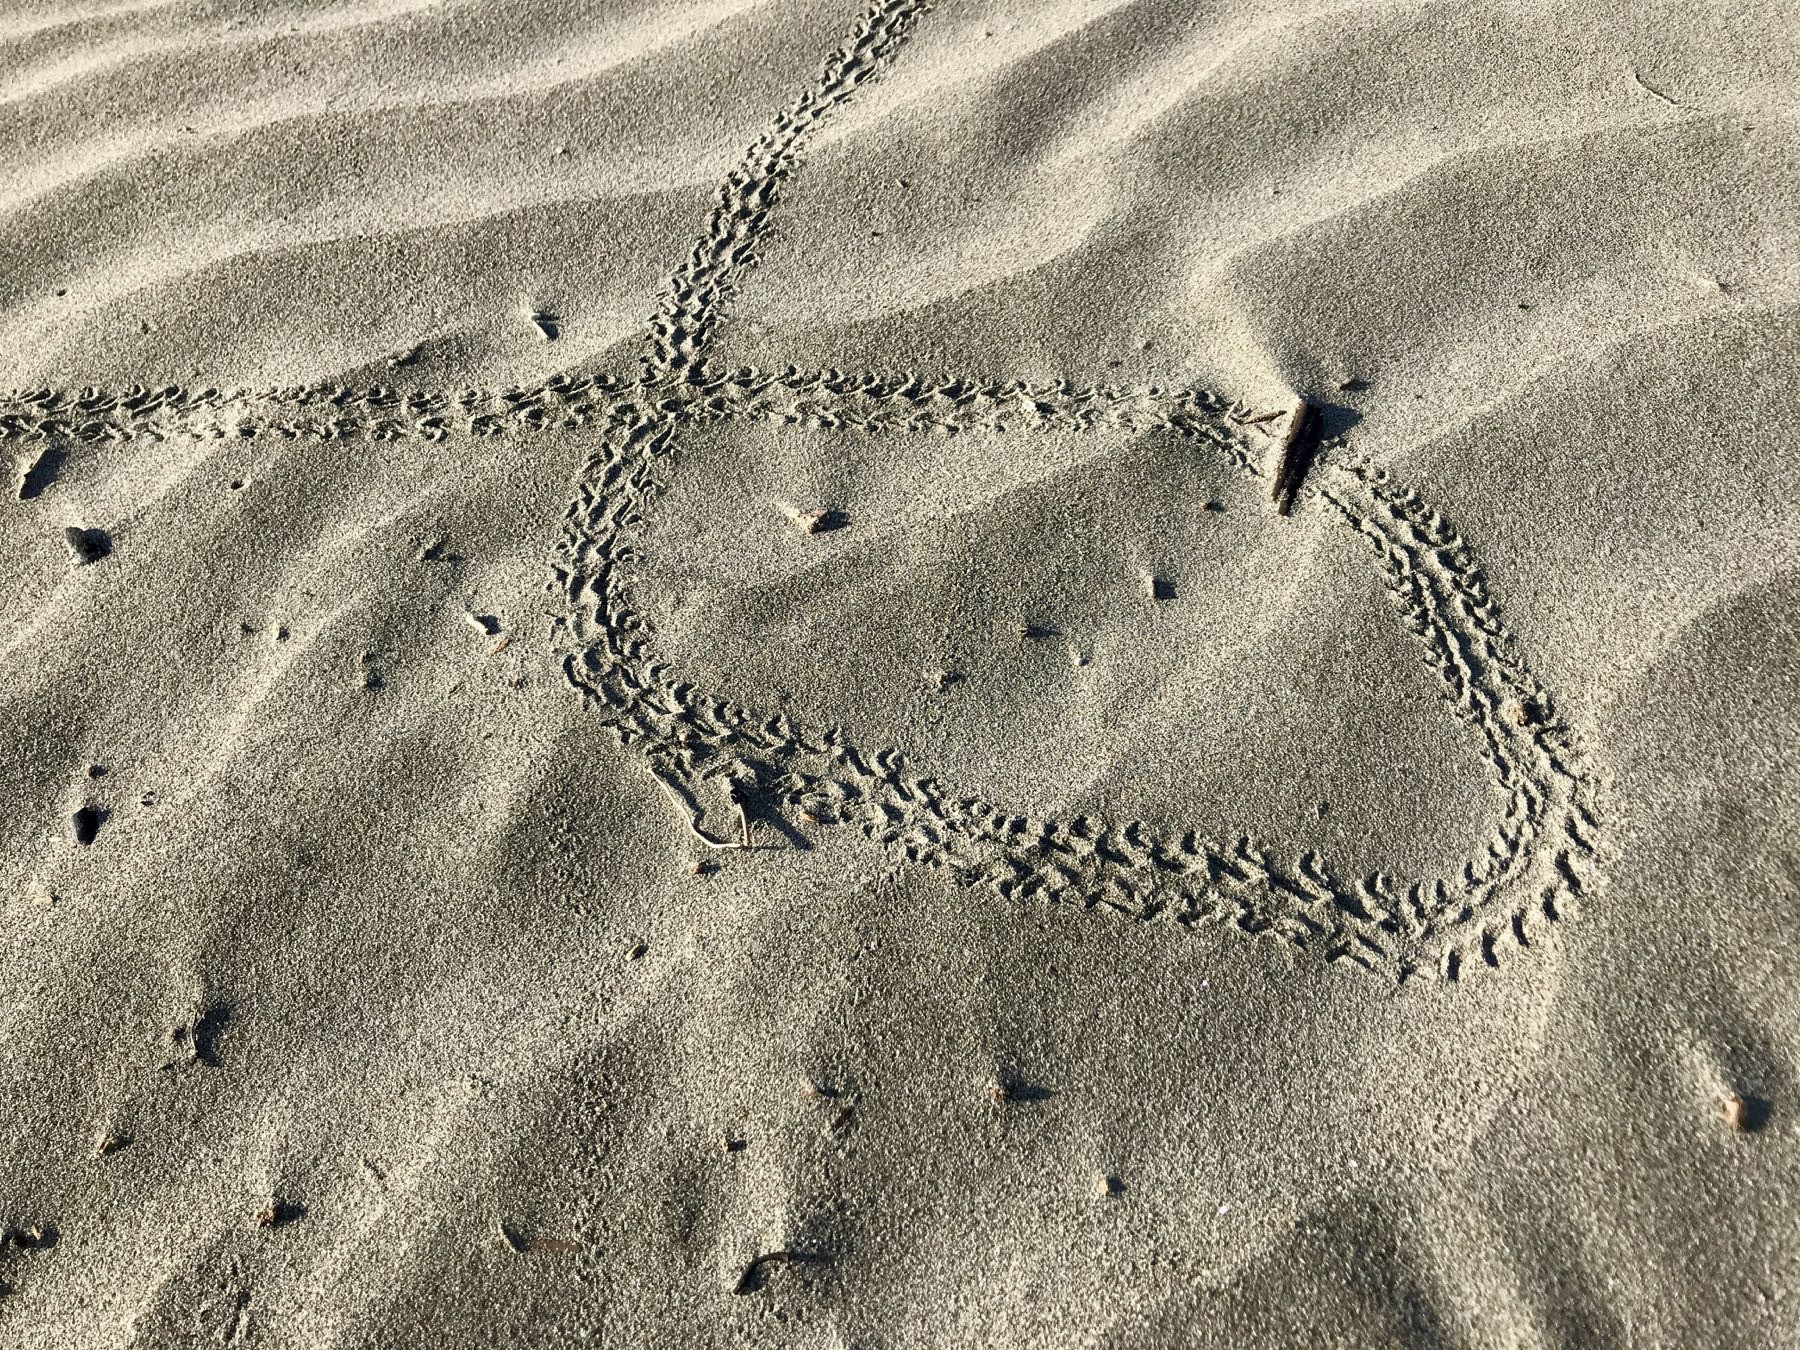 Tracks in the sand at the beach - perhaps a crab.